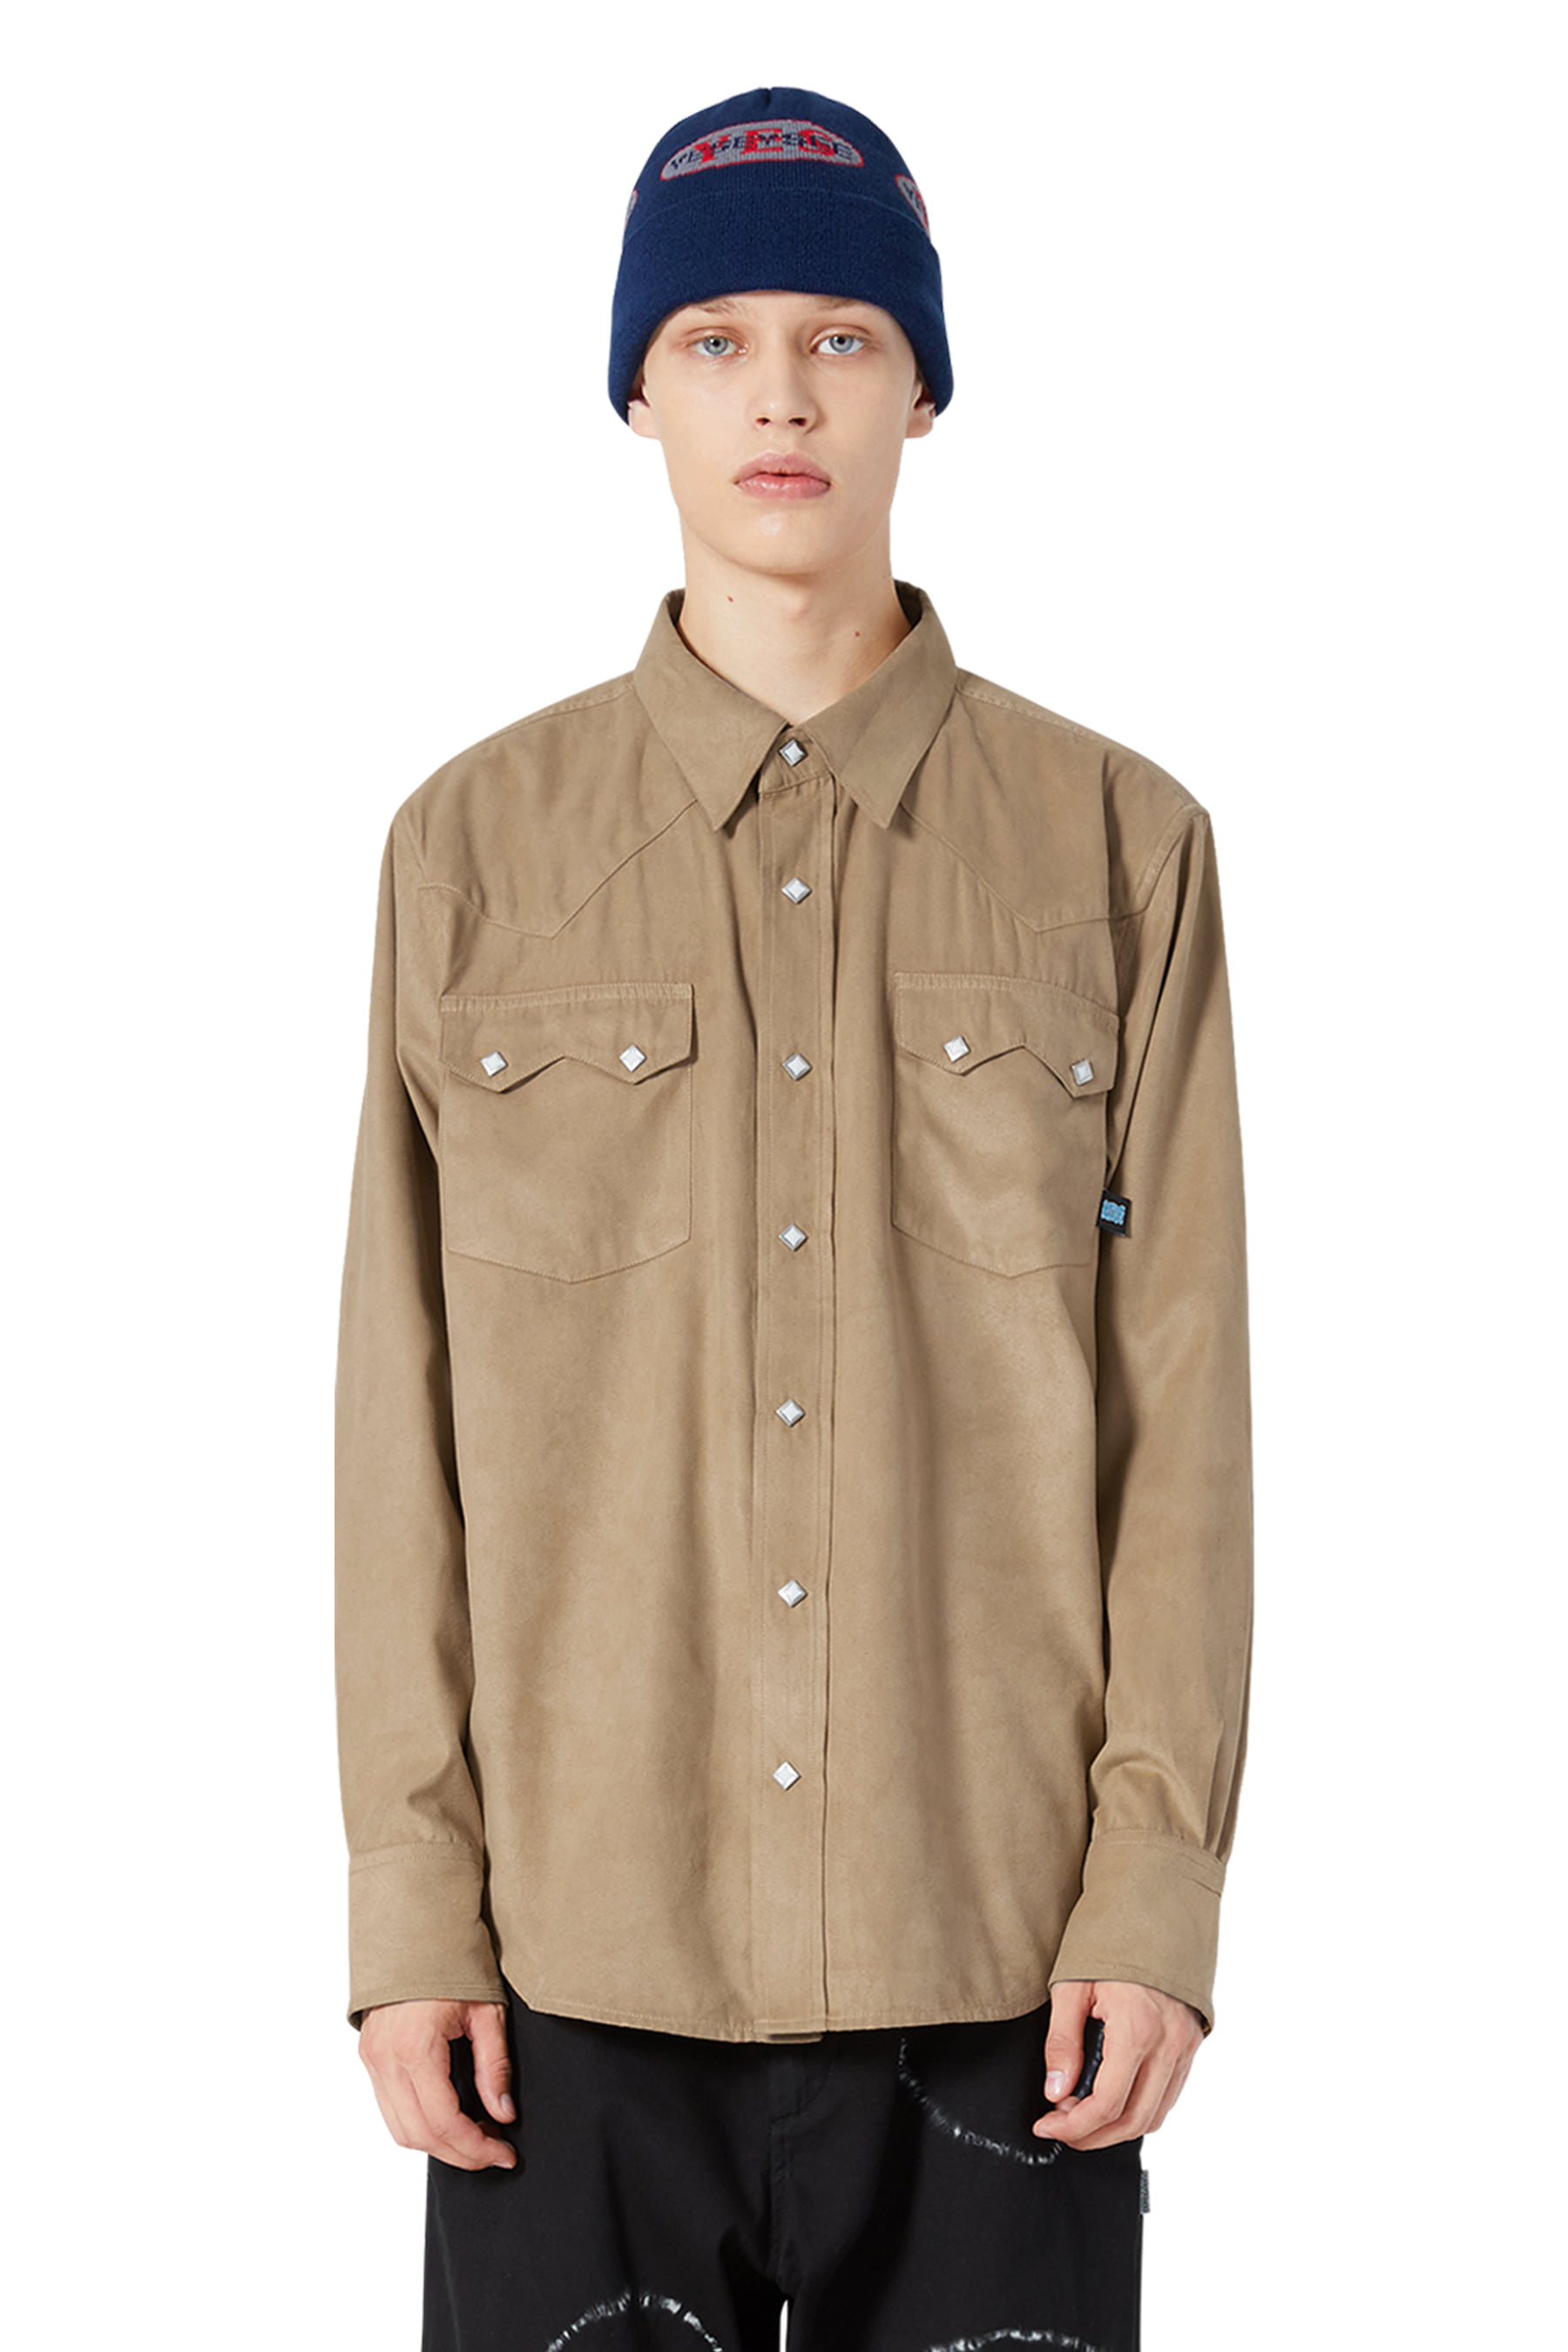 Y.E.S Suade Shirts Beige